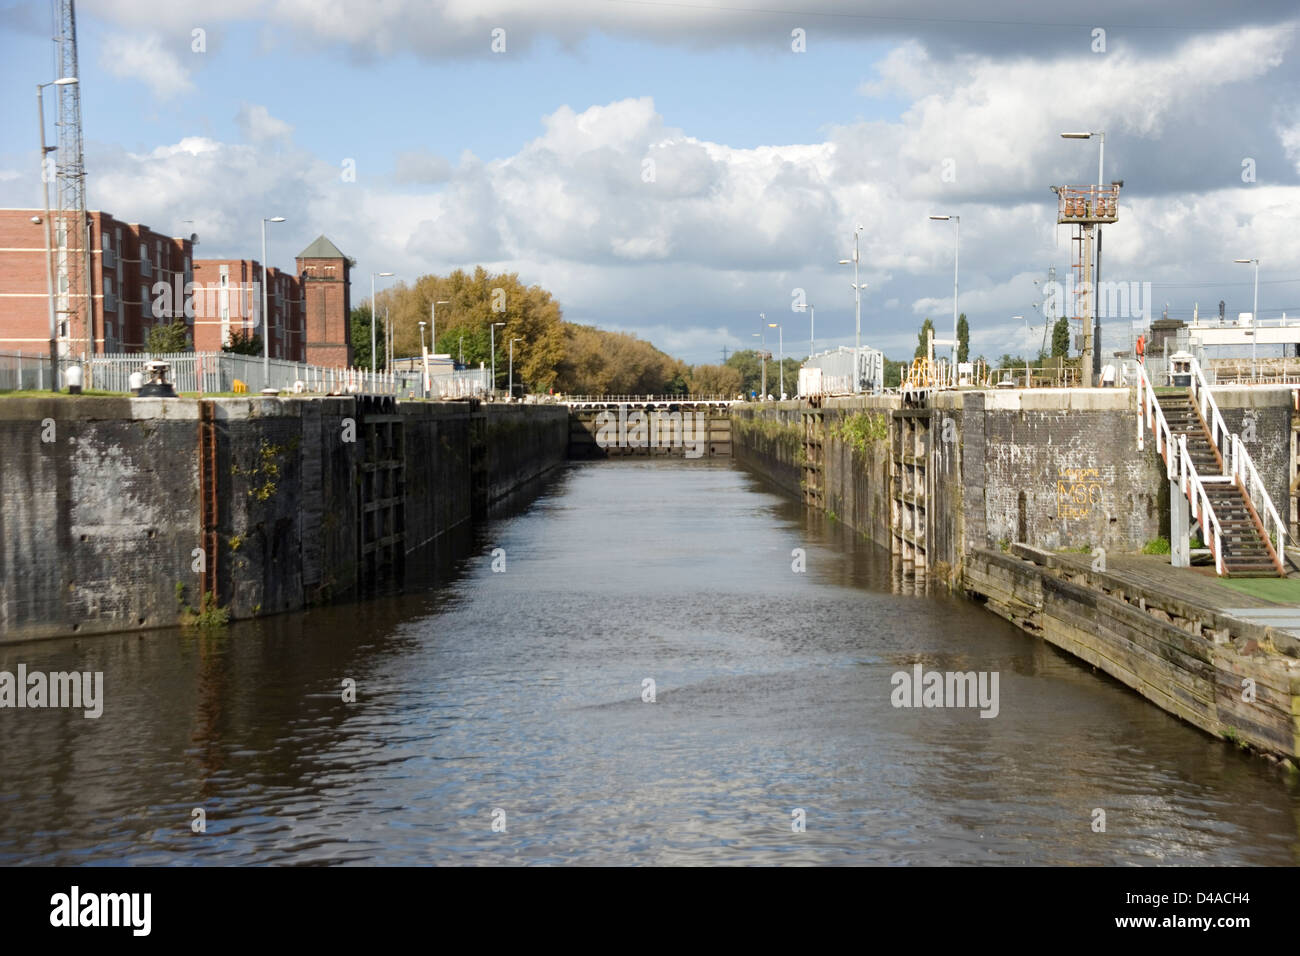 Irlam Locks on the Manchester Ship Canal from the Mersey Ferry - Stock Image